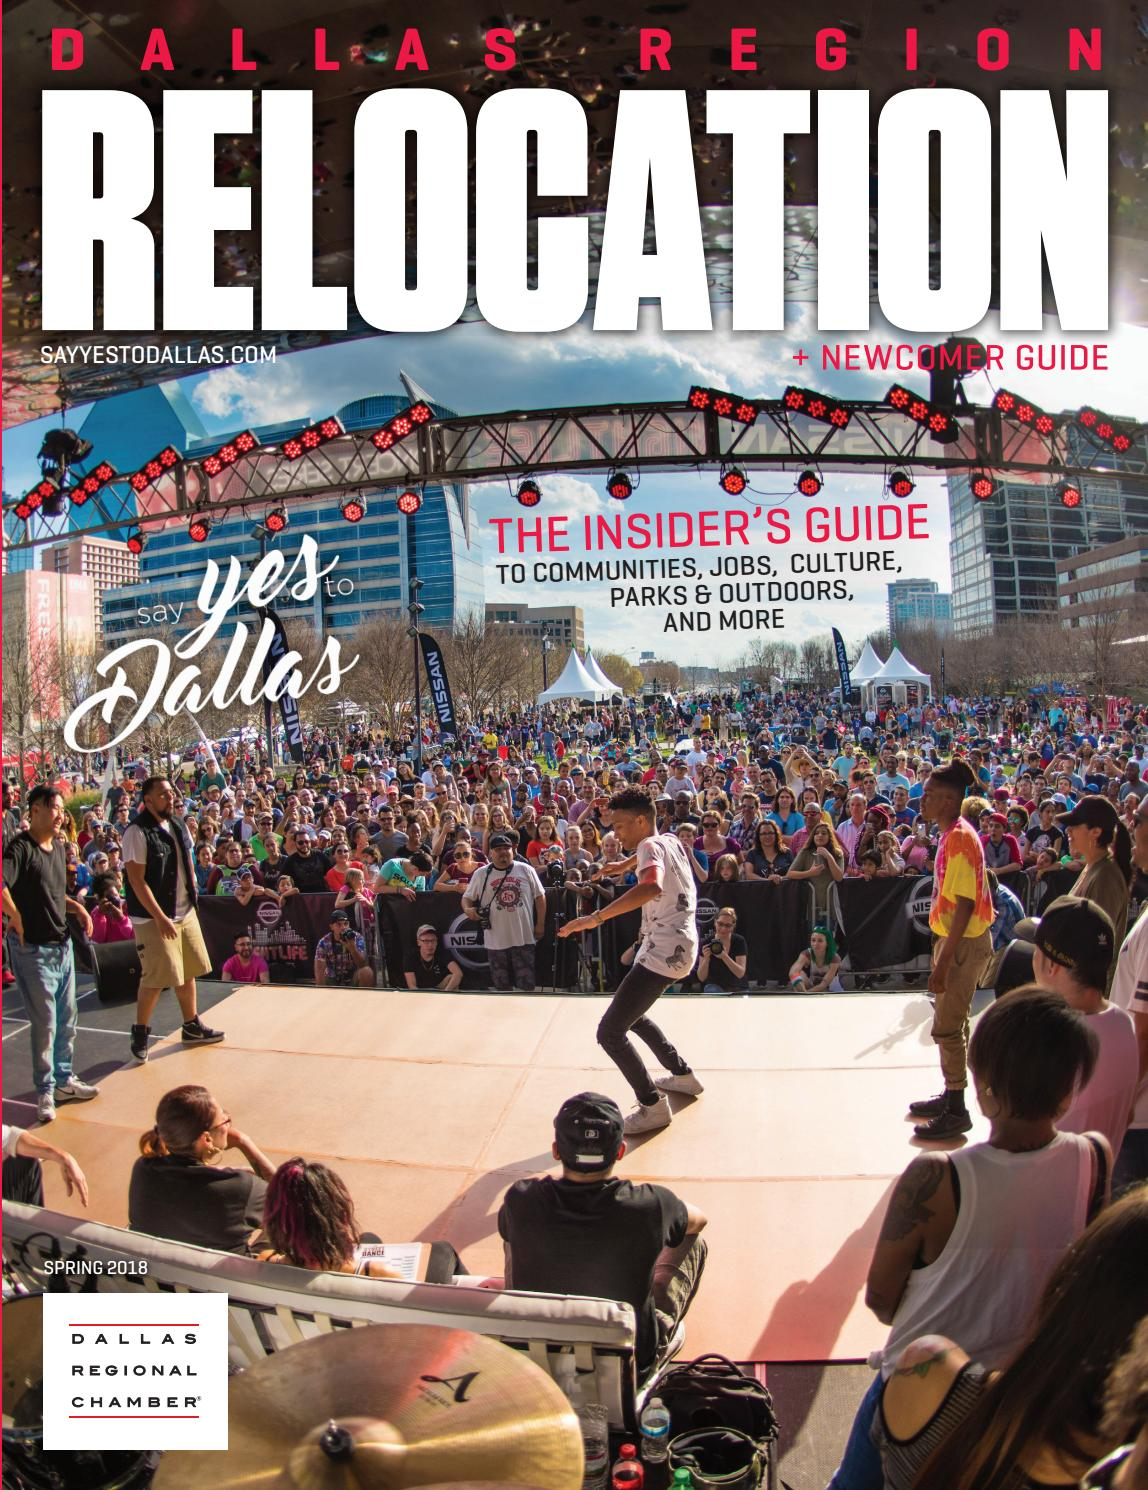 Dallas region relocation newcomer guide spring 2018 by dallas dallas region relocation newcomer guide spring 2018 by dallas regional chamber publications issuu malvernweather Image collections